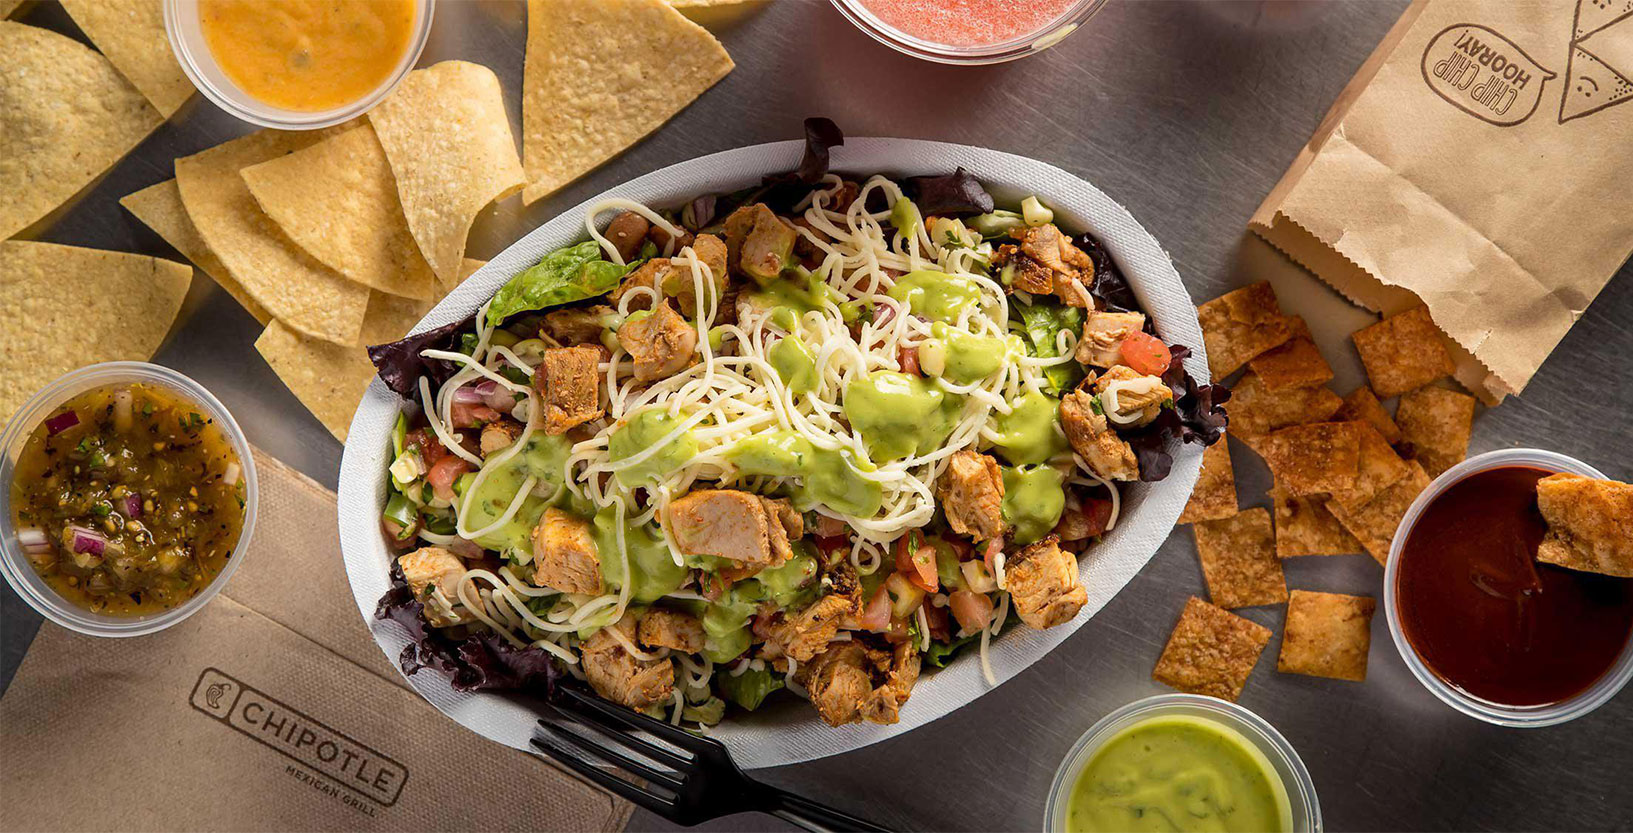 5 ways you're messing up your chipotle order - Category: LifestyleRead Time: 5 Minutes